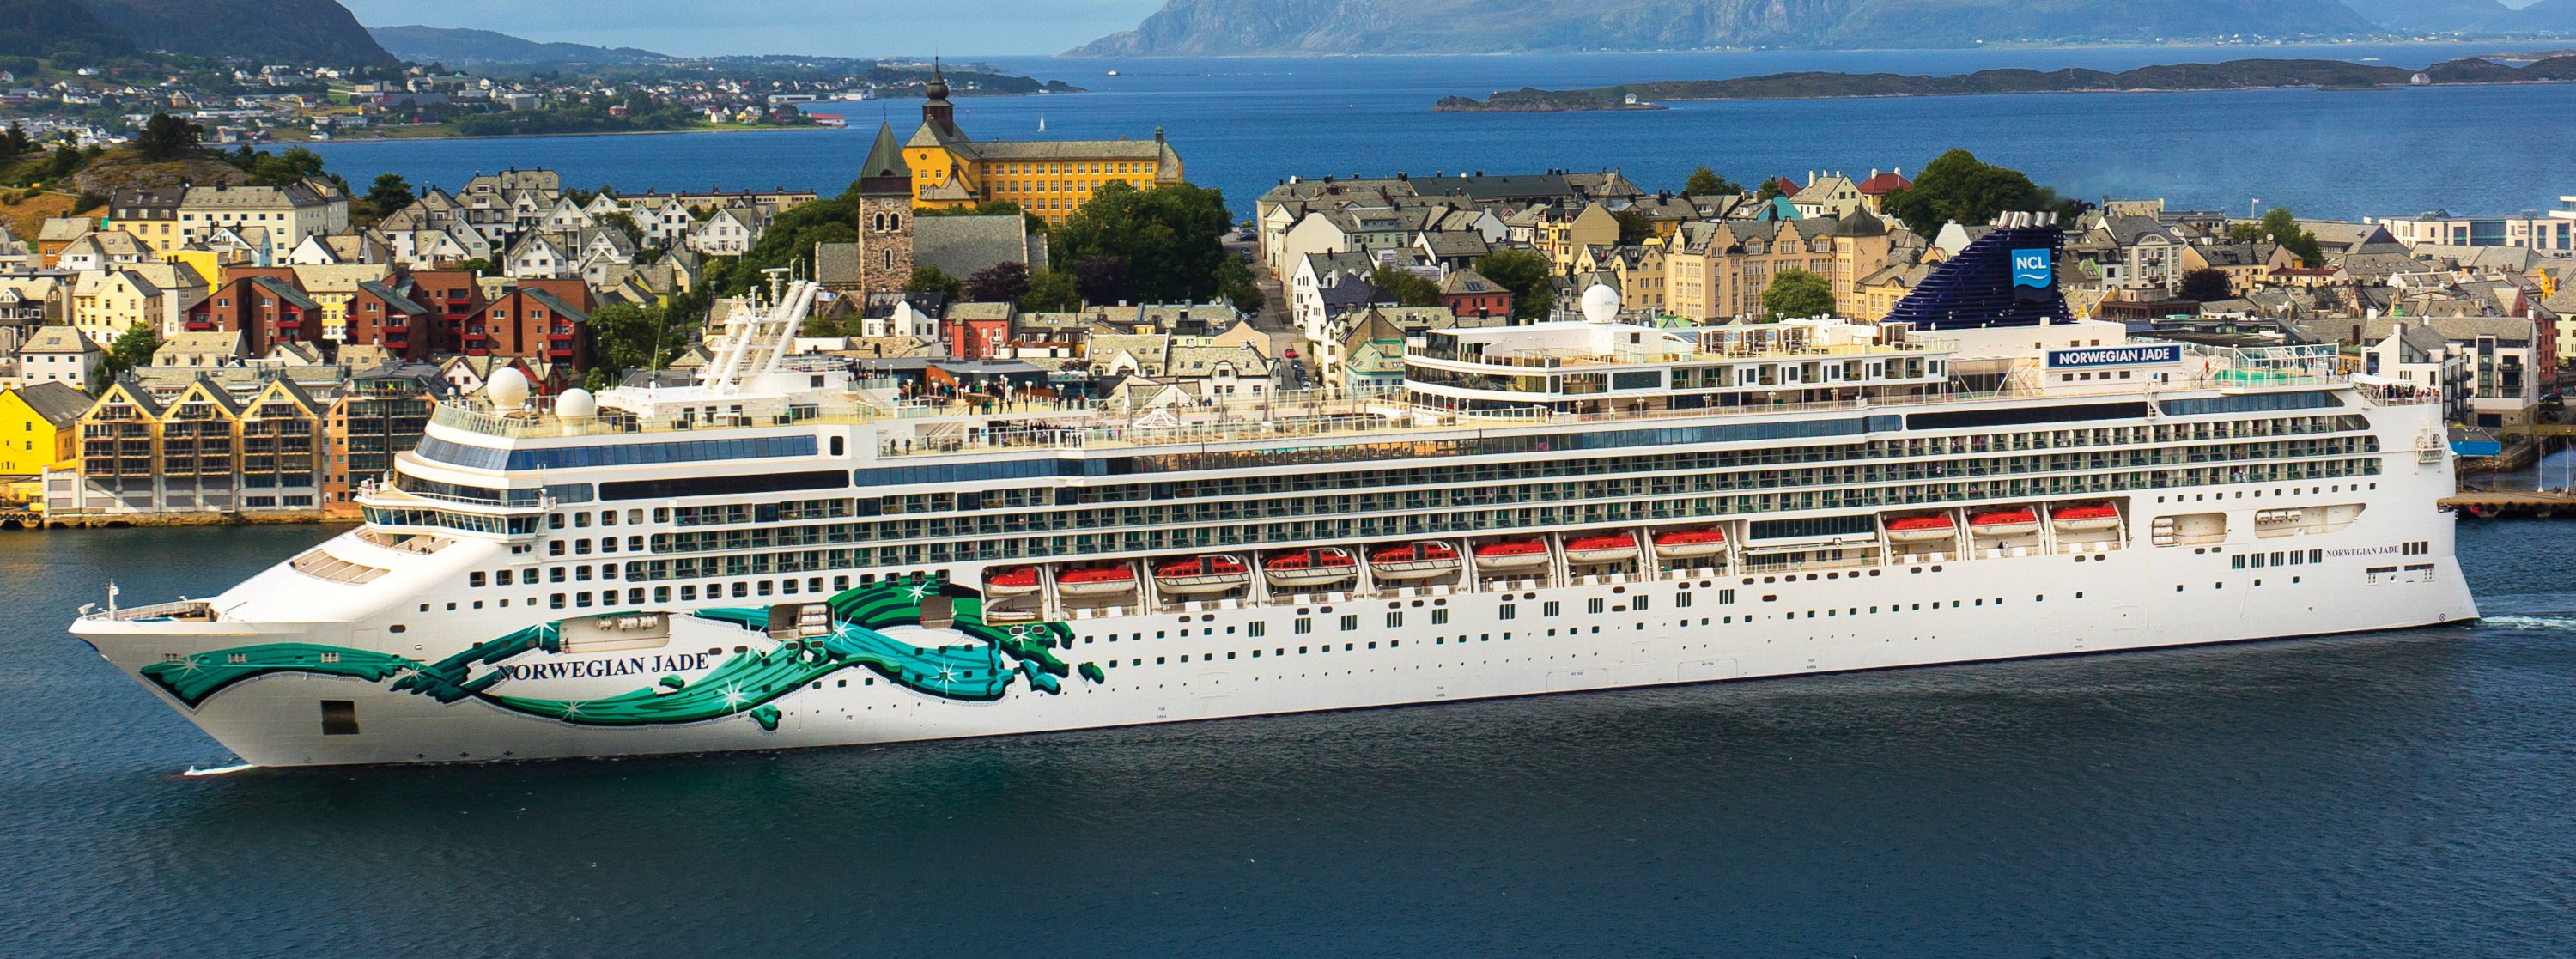 Greek Isles Cruise on Norwegian Jade